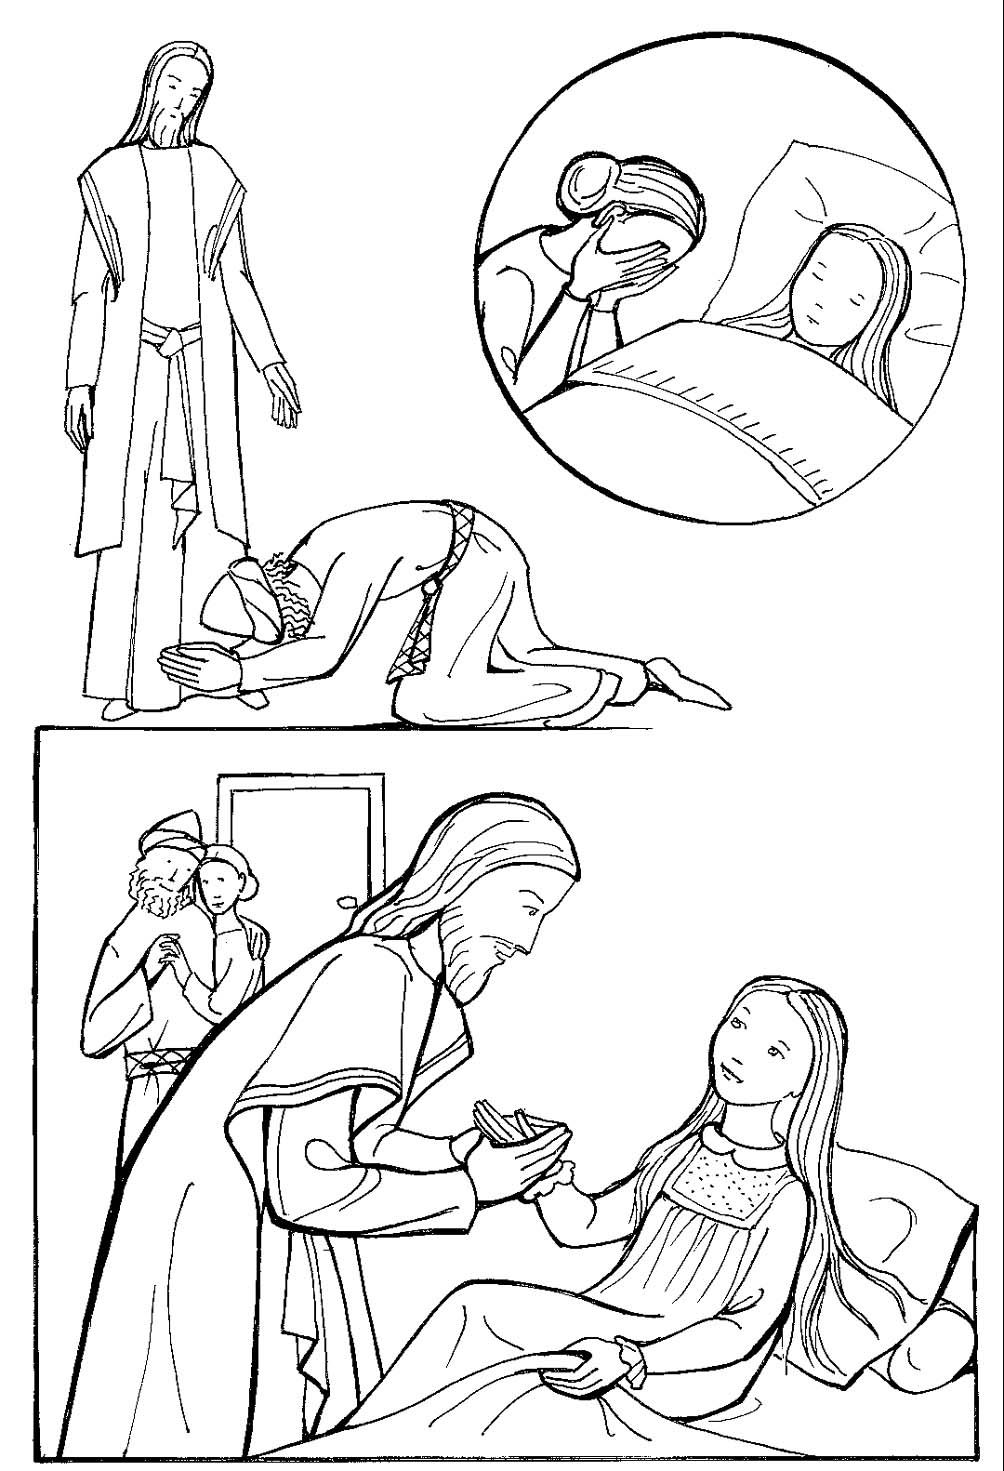 bible coloring pages miracles - photo#19